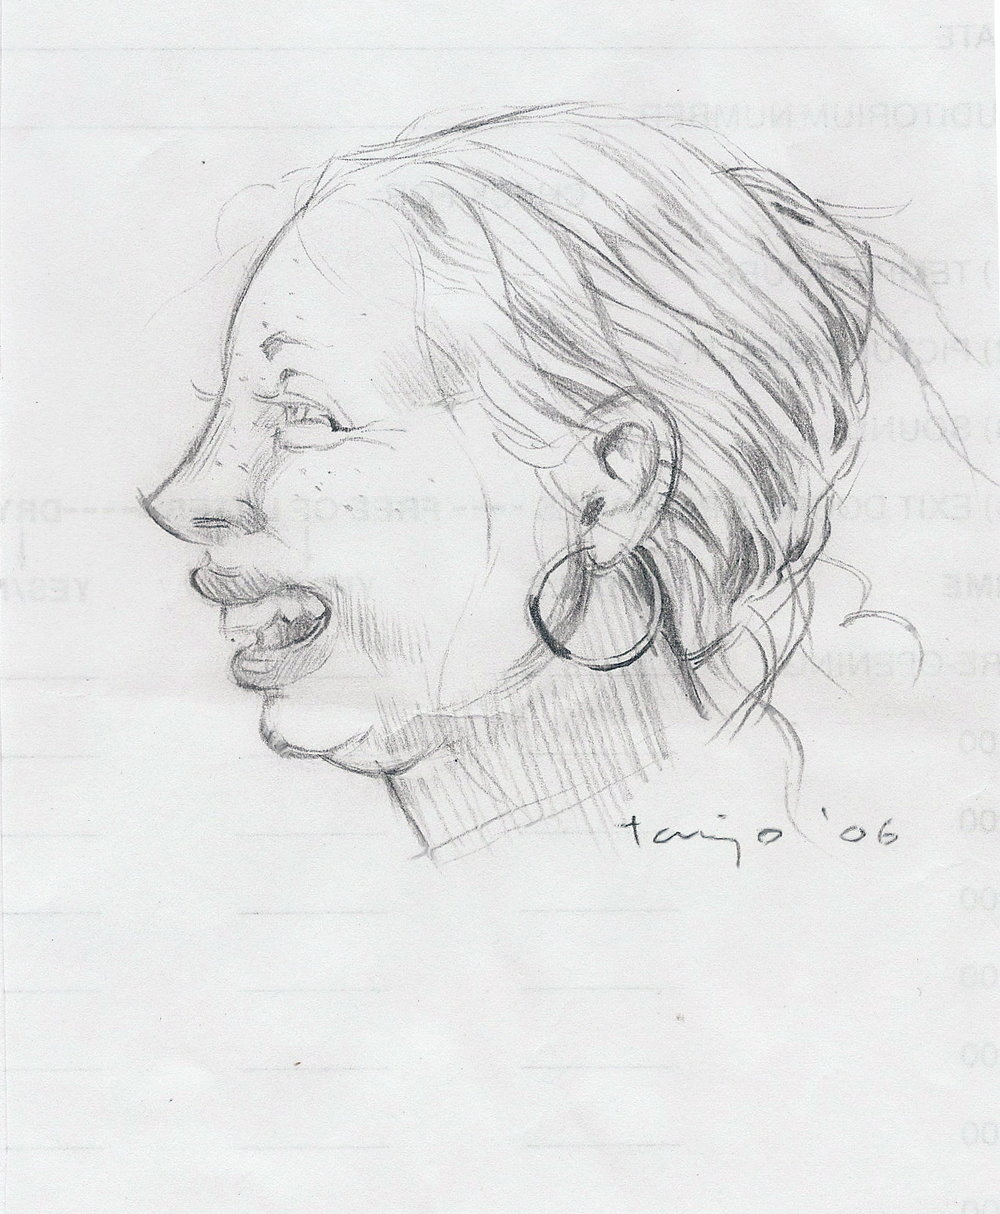 Papillia at the Carmike Ten, 2006, pencil on back of Carmike Ten's Theater Checklist, 4 x 5 inches